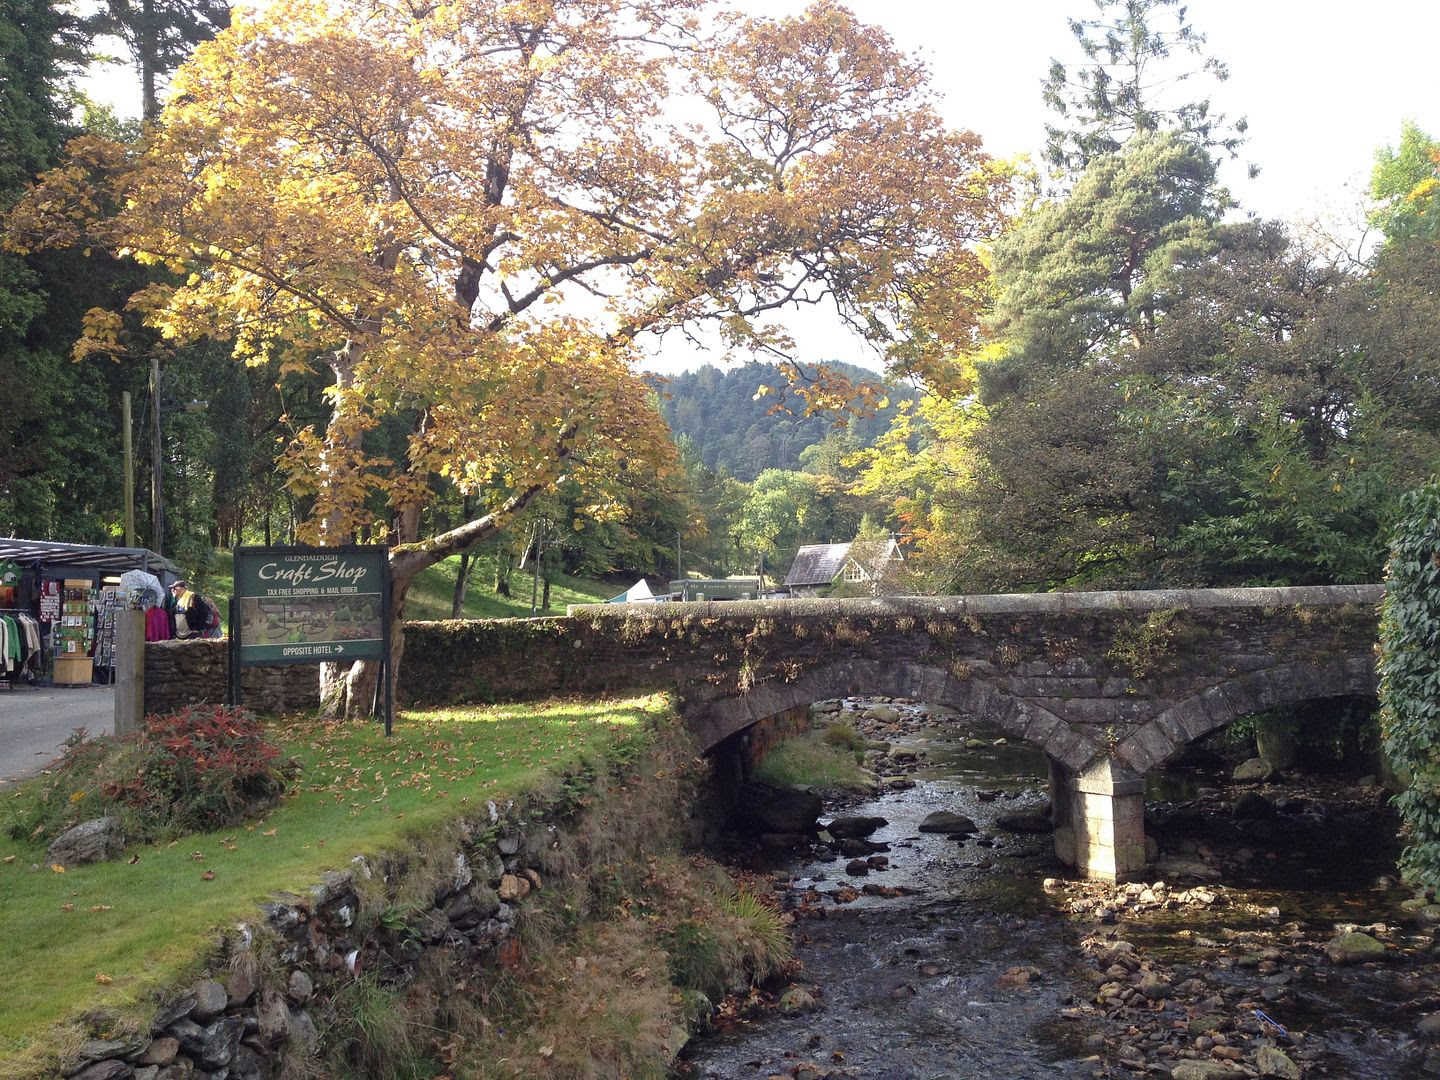 Glendalough, Ireland photo 2015-10-16 14.19.36_zps1rupvs18.jpg